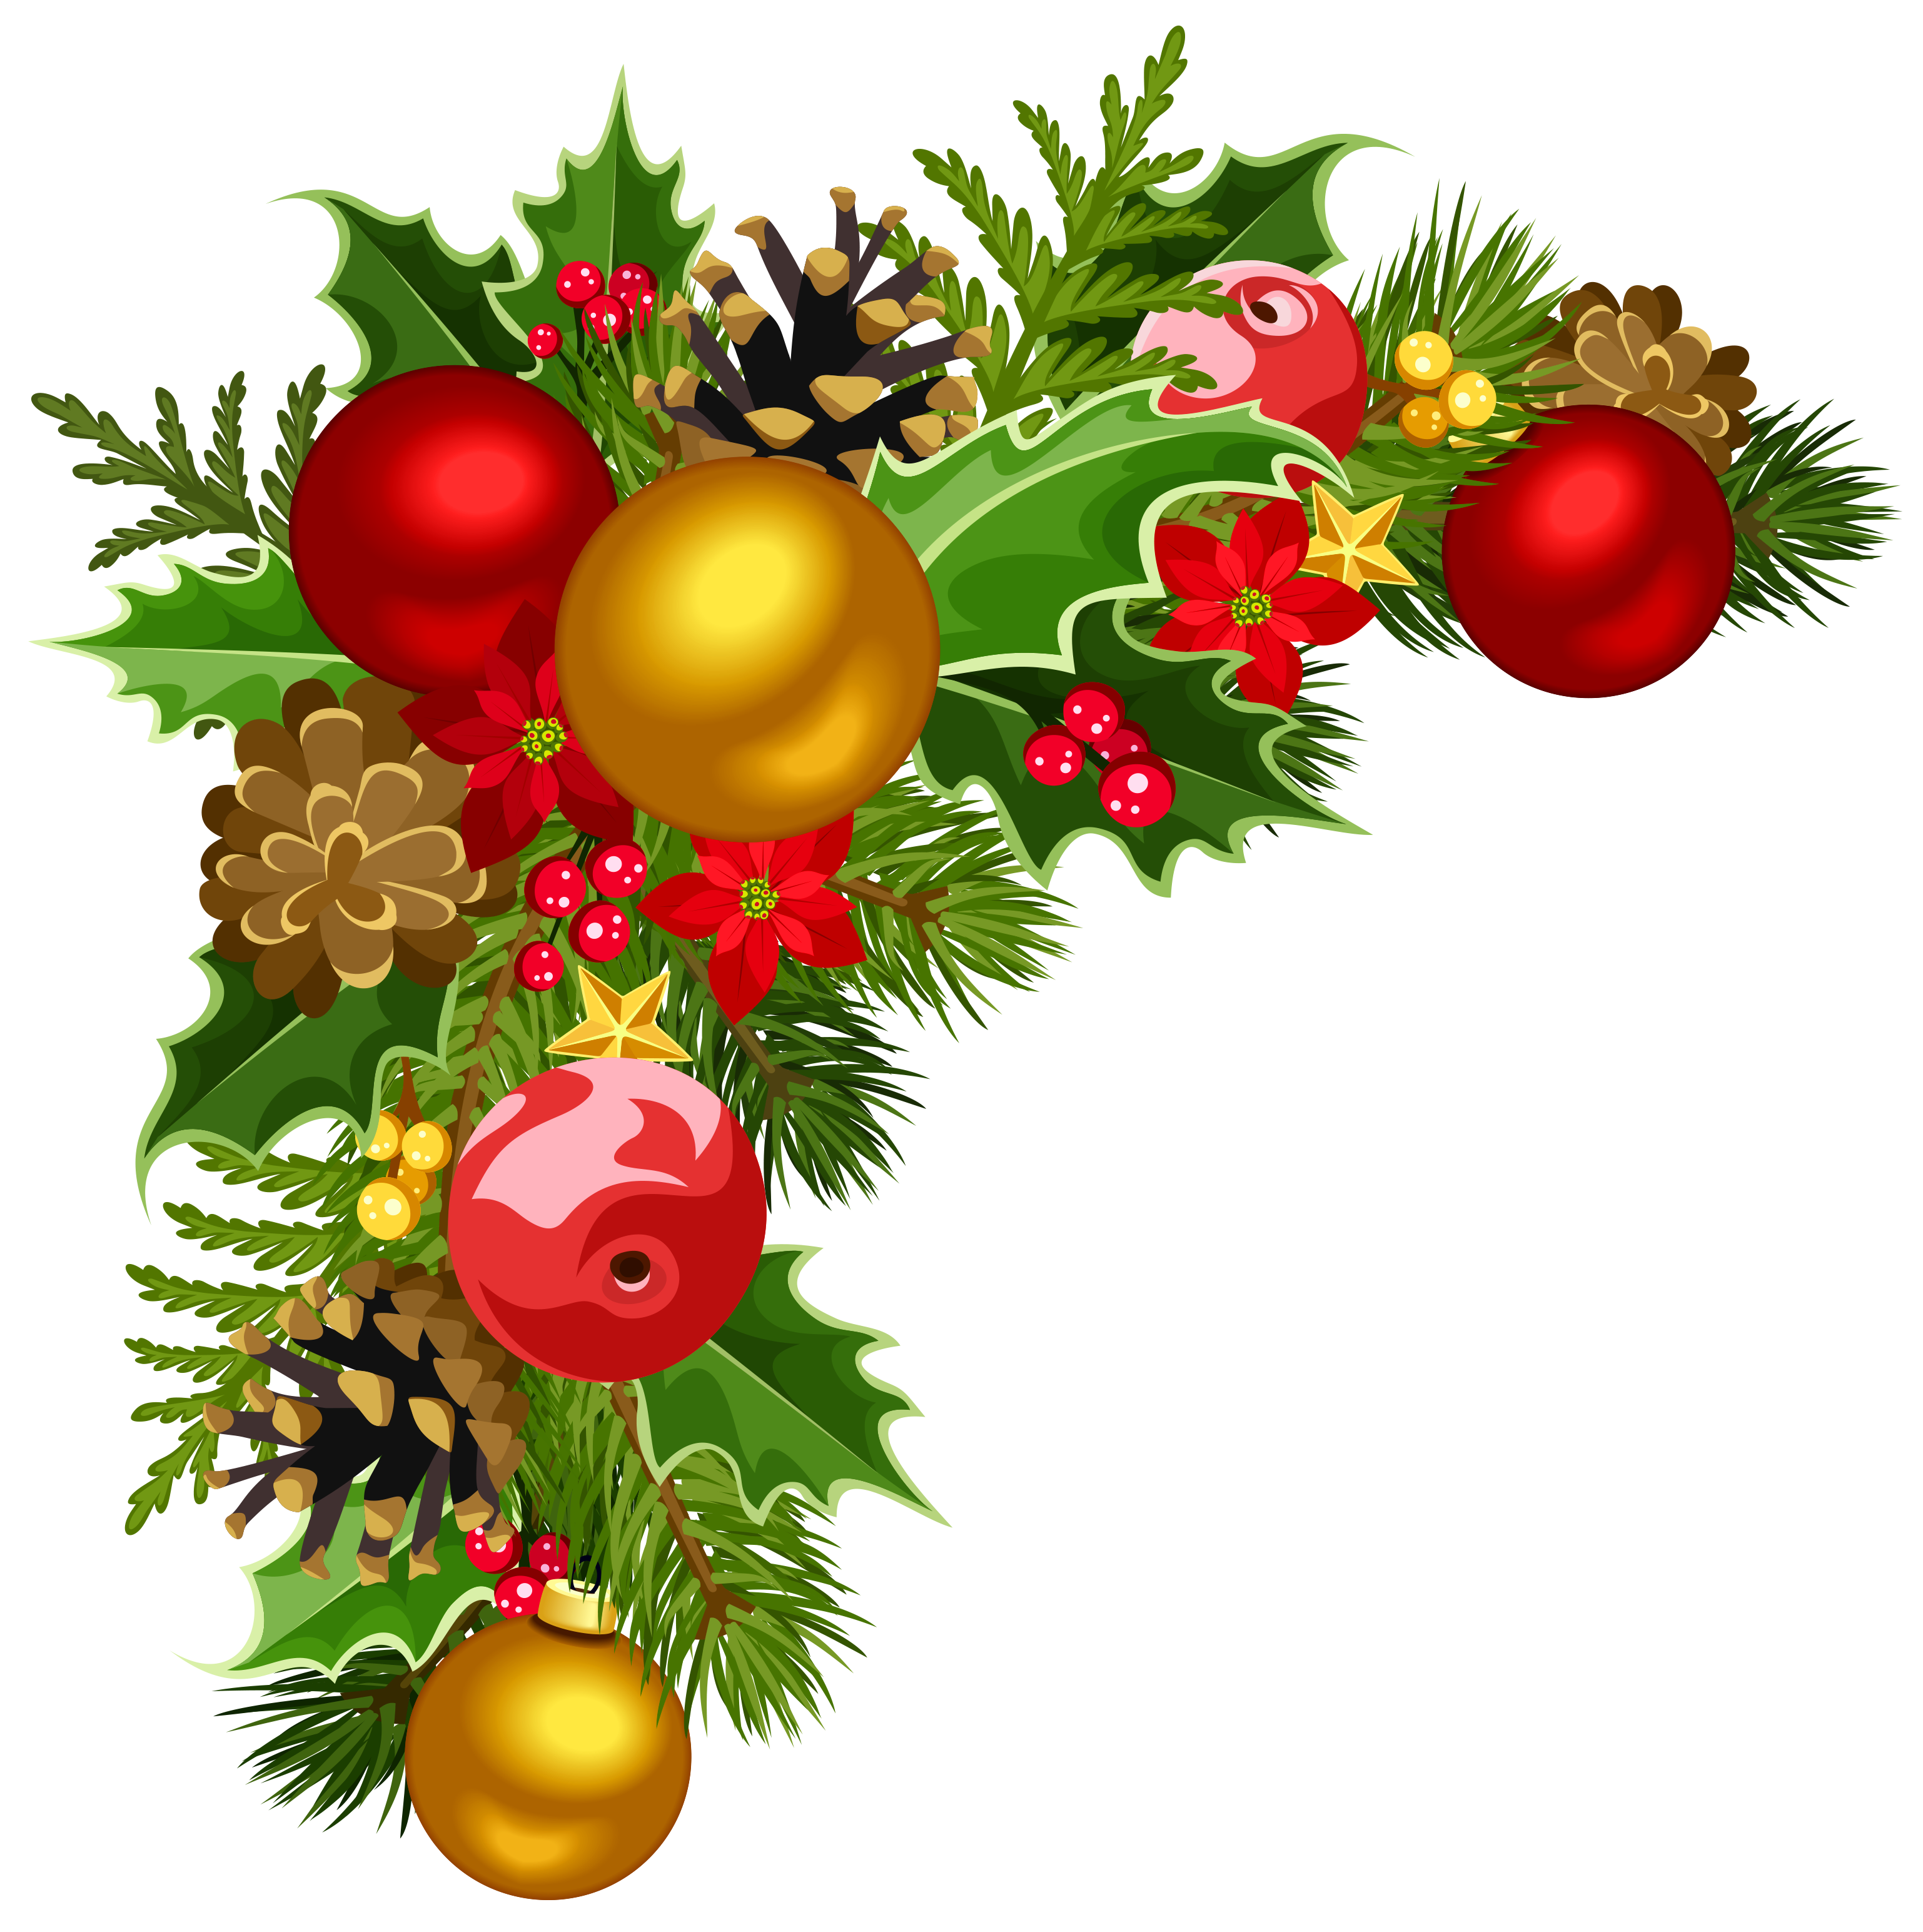 Christmas decorations clipart happy holidays christmas Christmas tree ornaments ideas